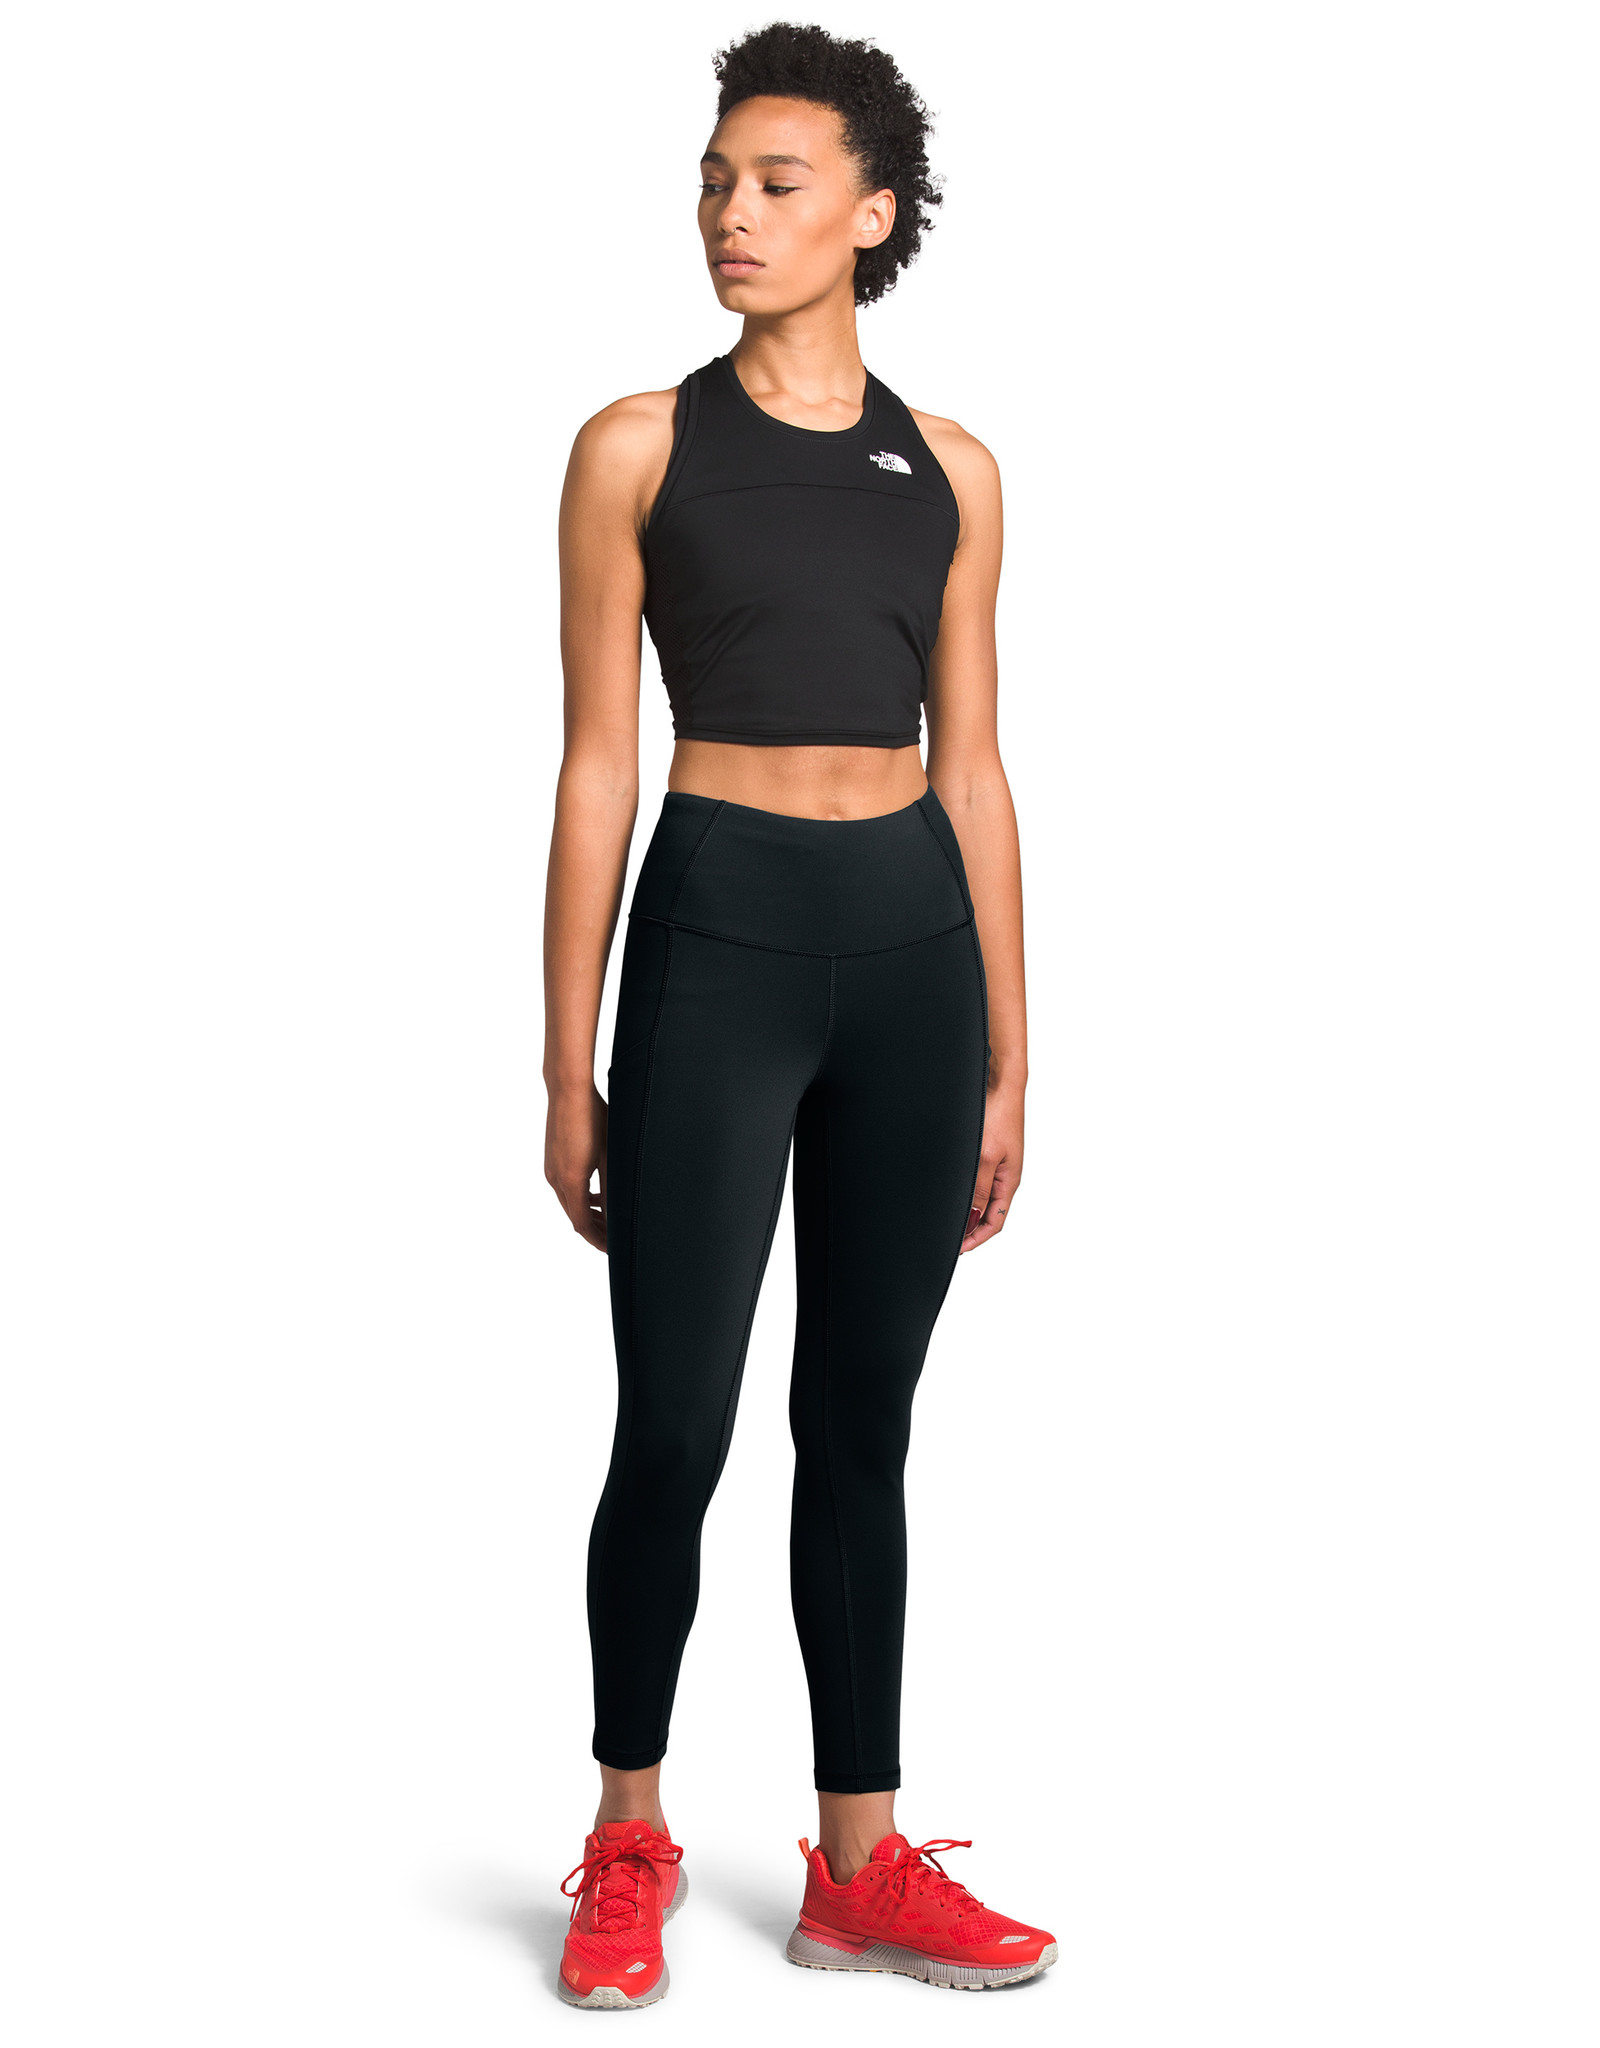 The North Face The North Face Women's Motivation High-Rise Pocket Tight - S2019